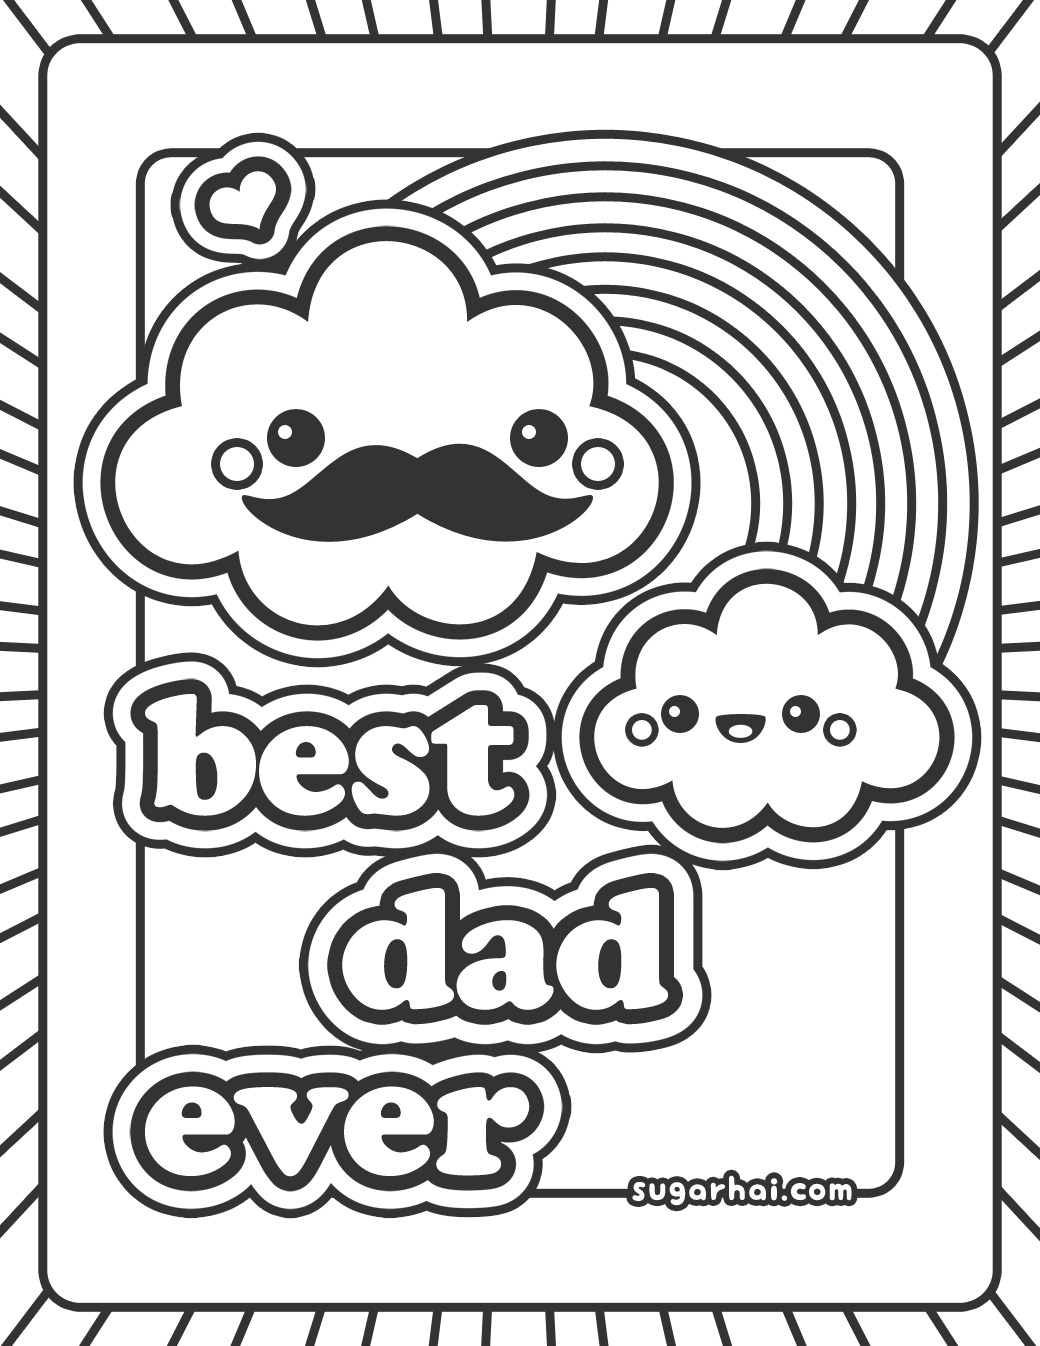 Free Best Dad Ever Coloring Page Dads Cloud And Digi St S